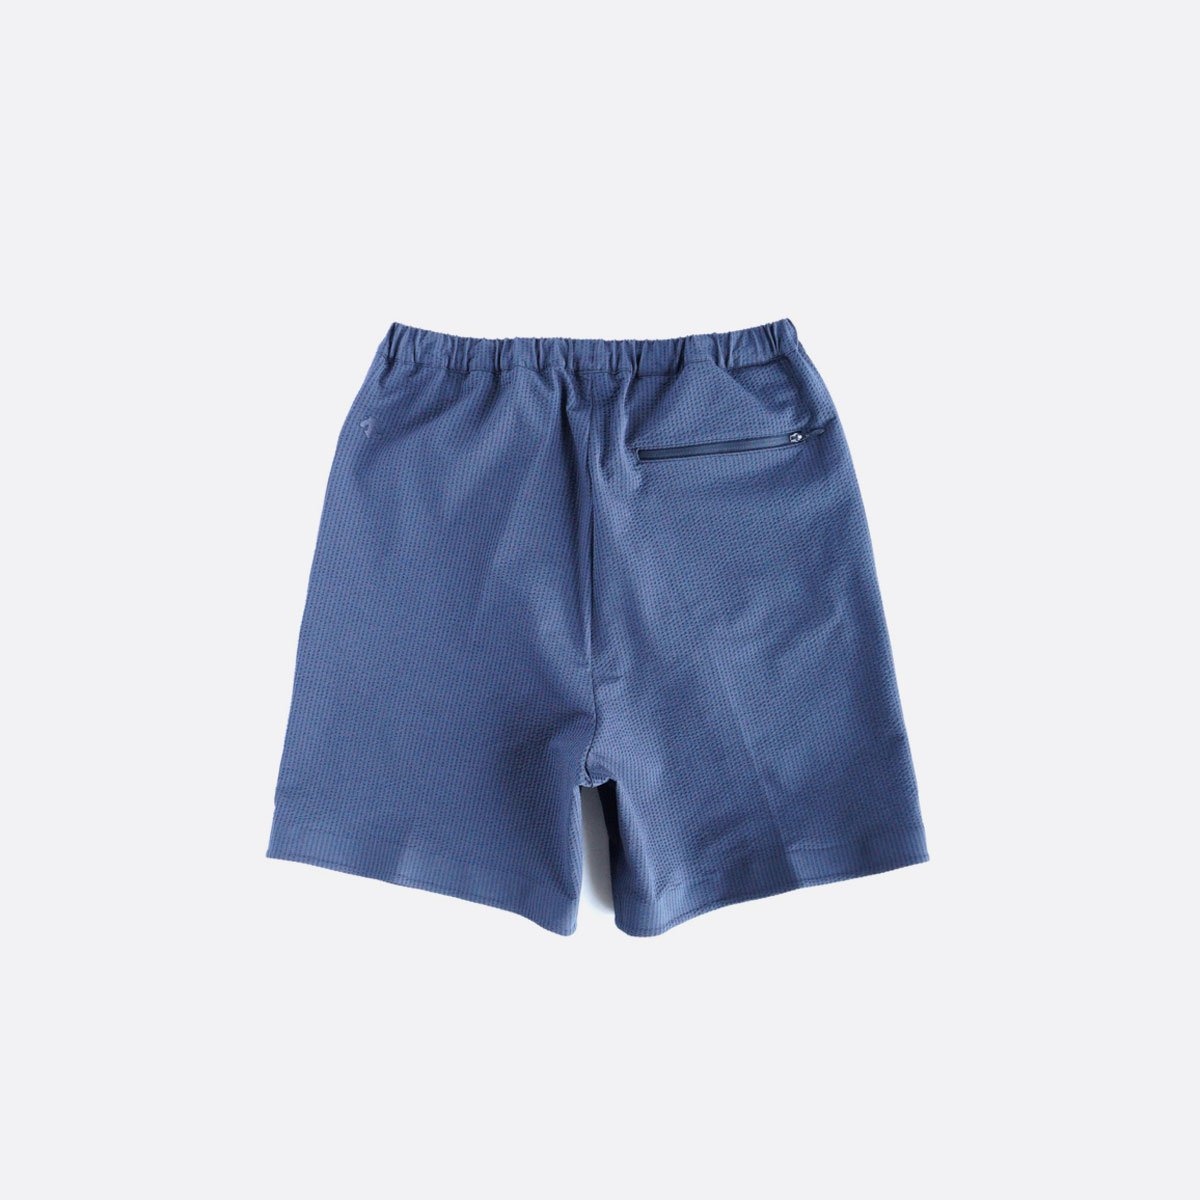 DESCENTE PAUSE SEERSUCKER SHORT PANTS (NAVY)2